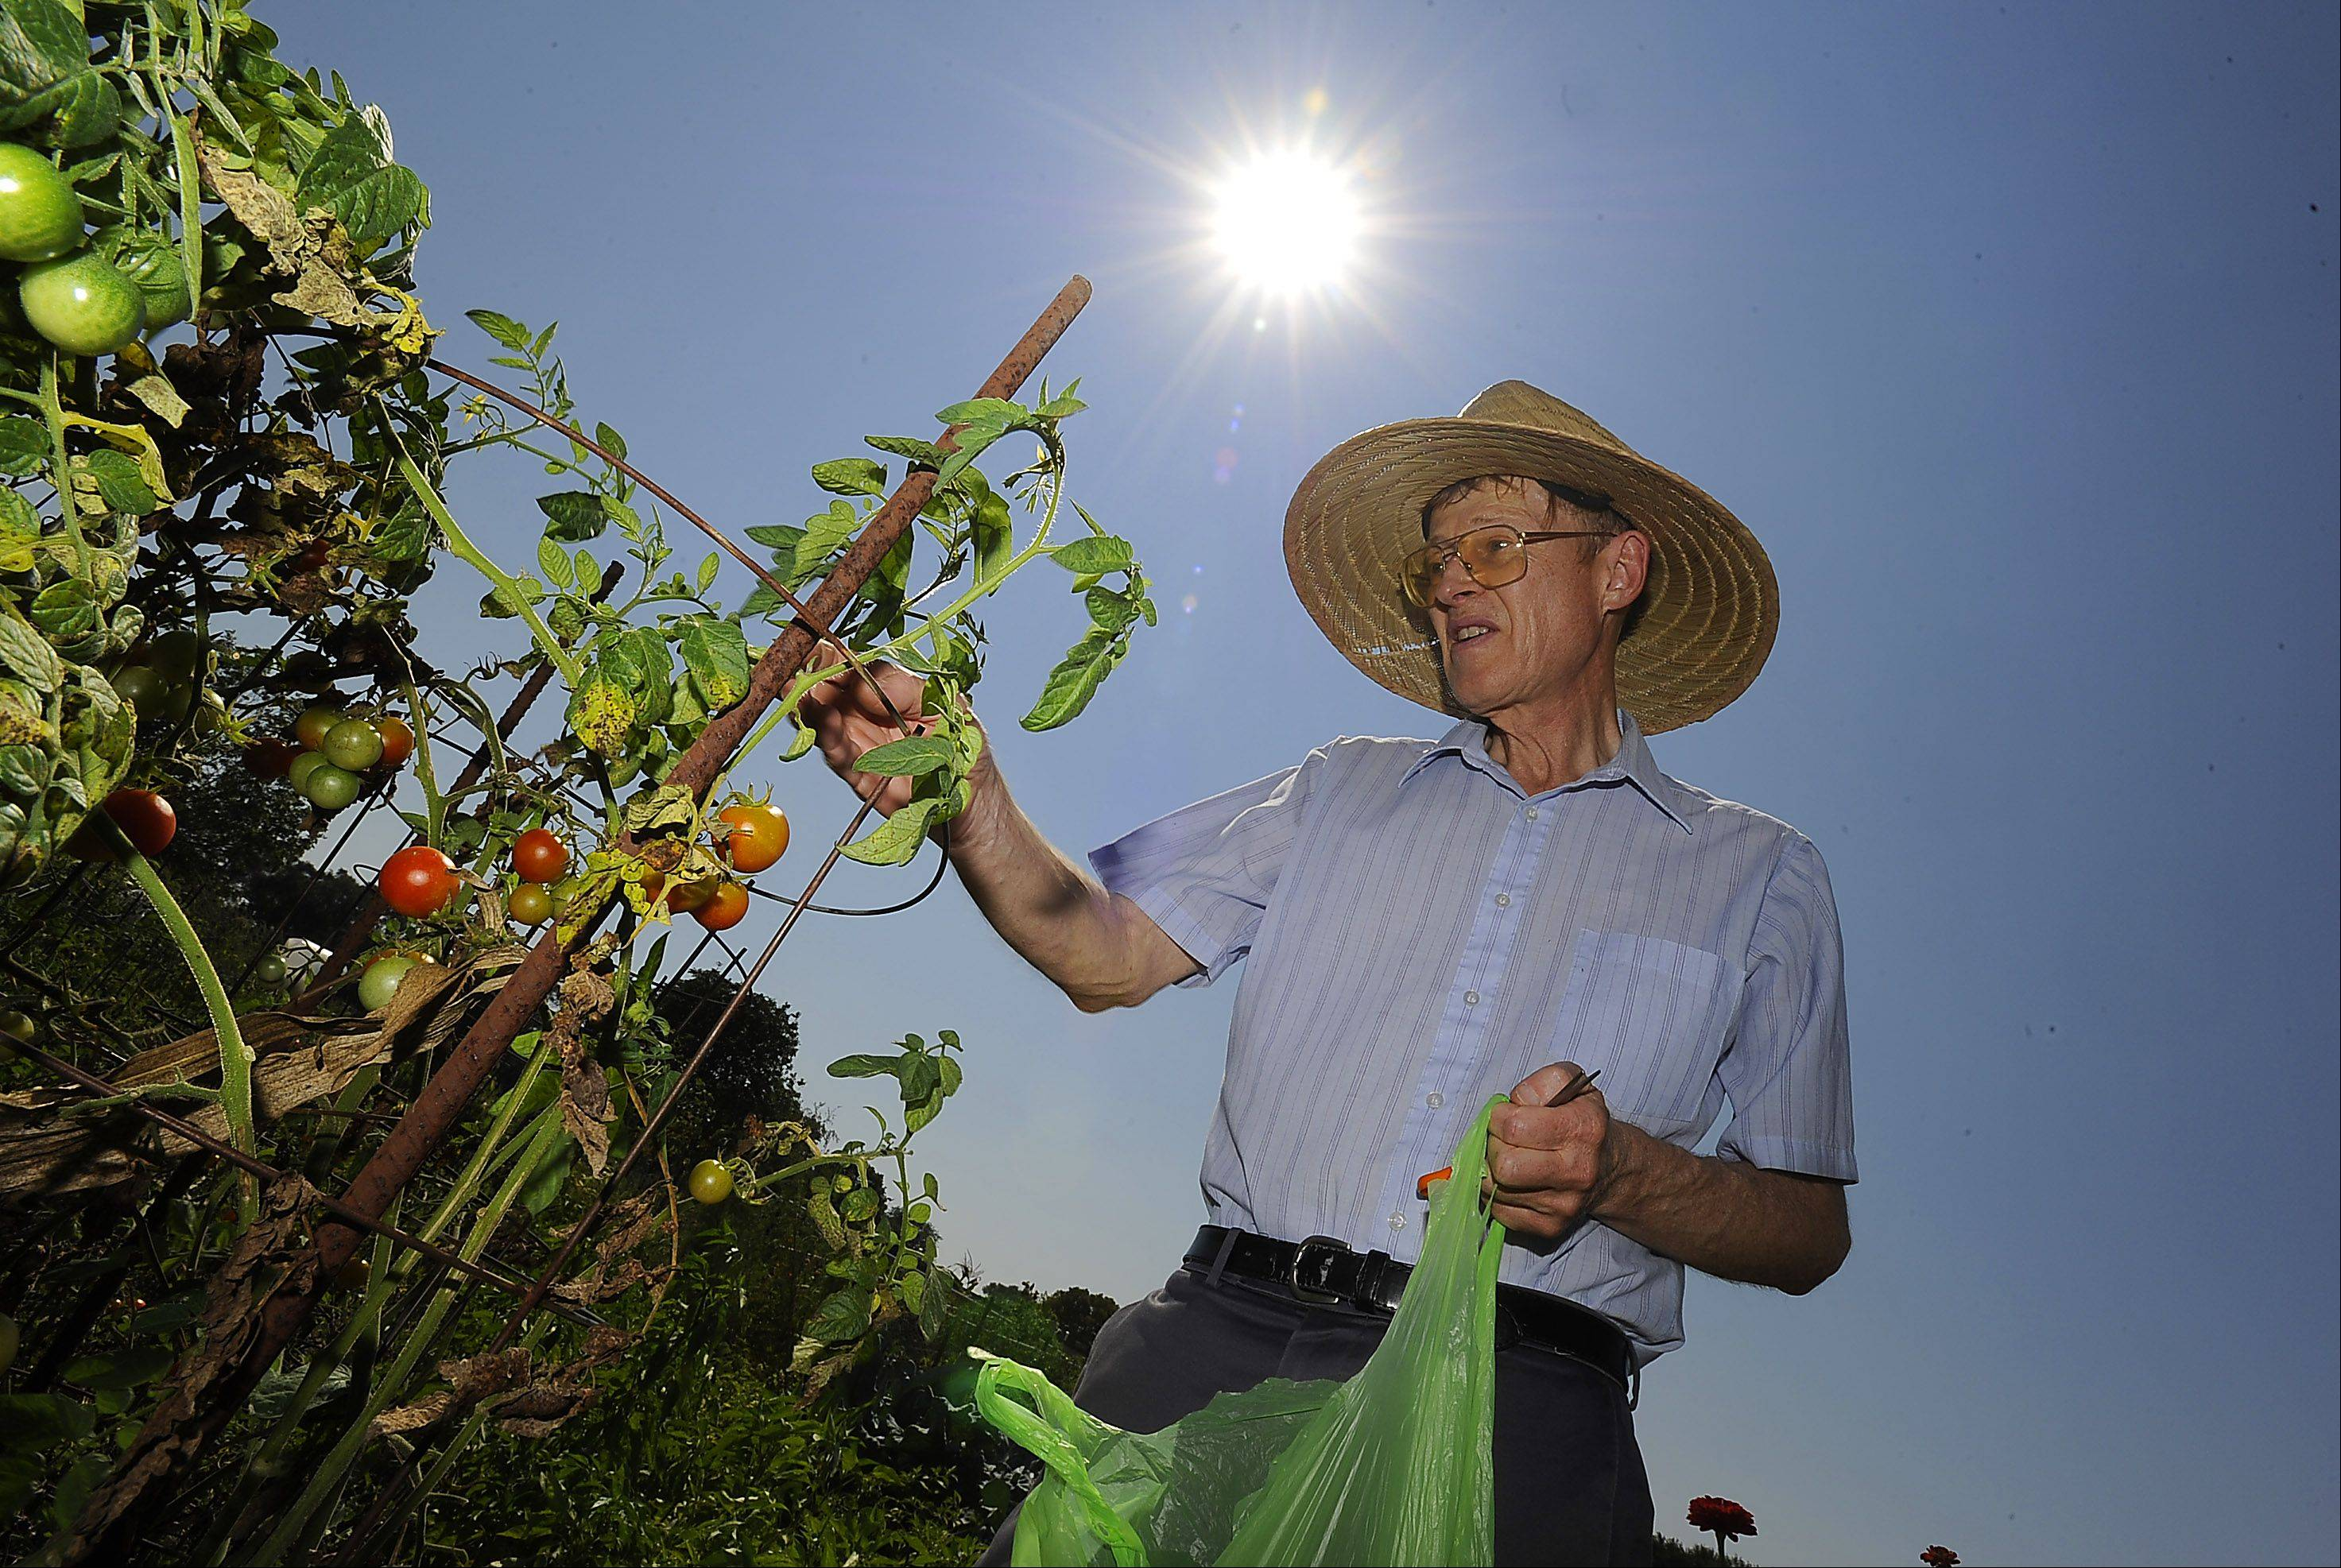 David Sullins of Mt. Prospect harvested his remaining cherry tomatoes on perhaps the hottest day of the year in his garden patch with his sun hat instead of his baseball hat which he just started using a week ago was working perfectly under these conditions.